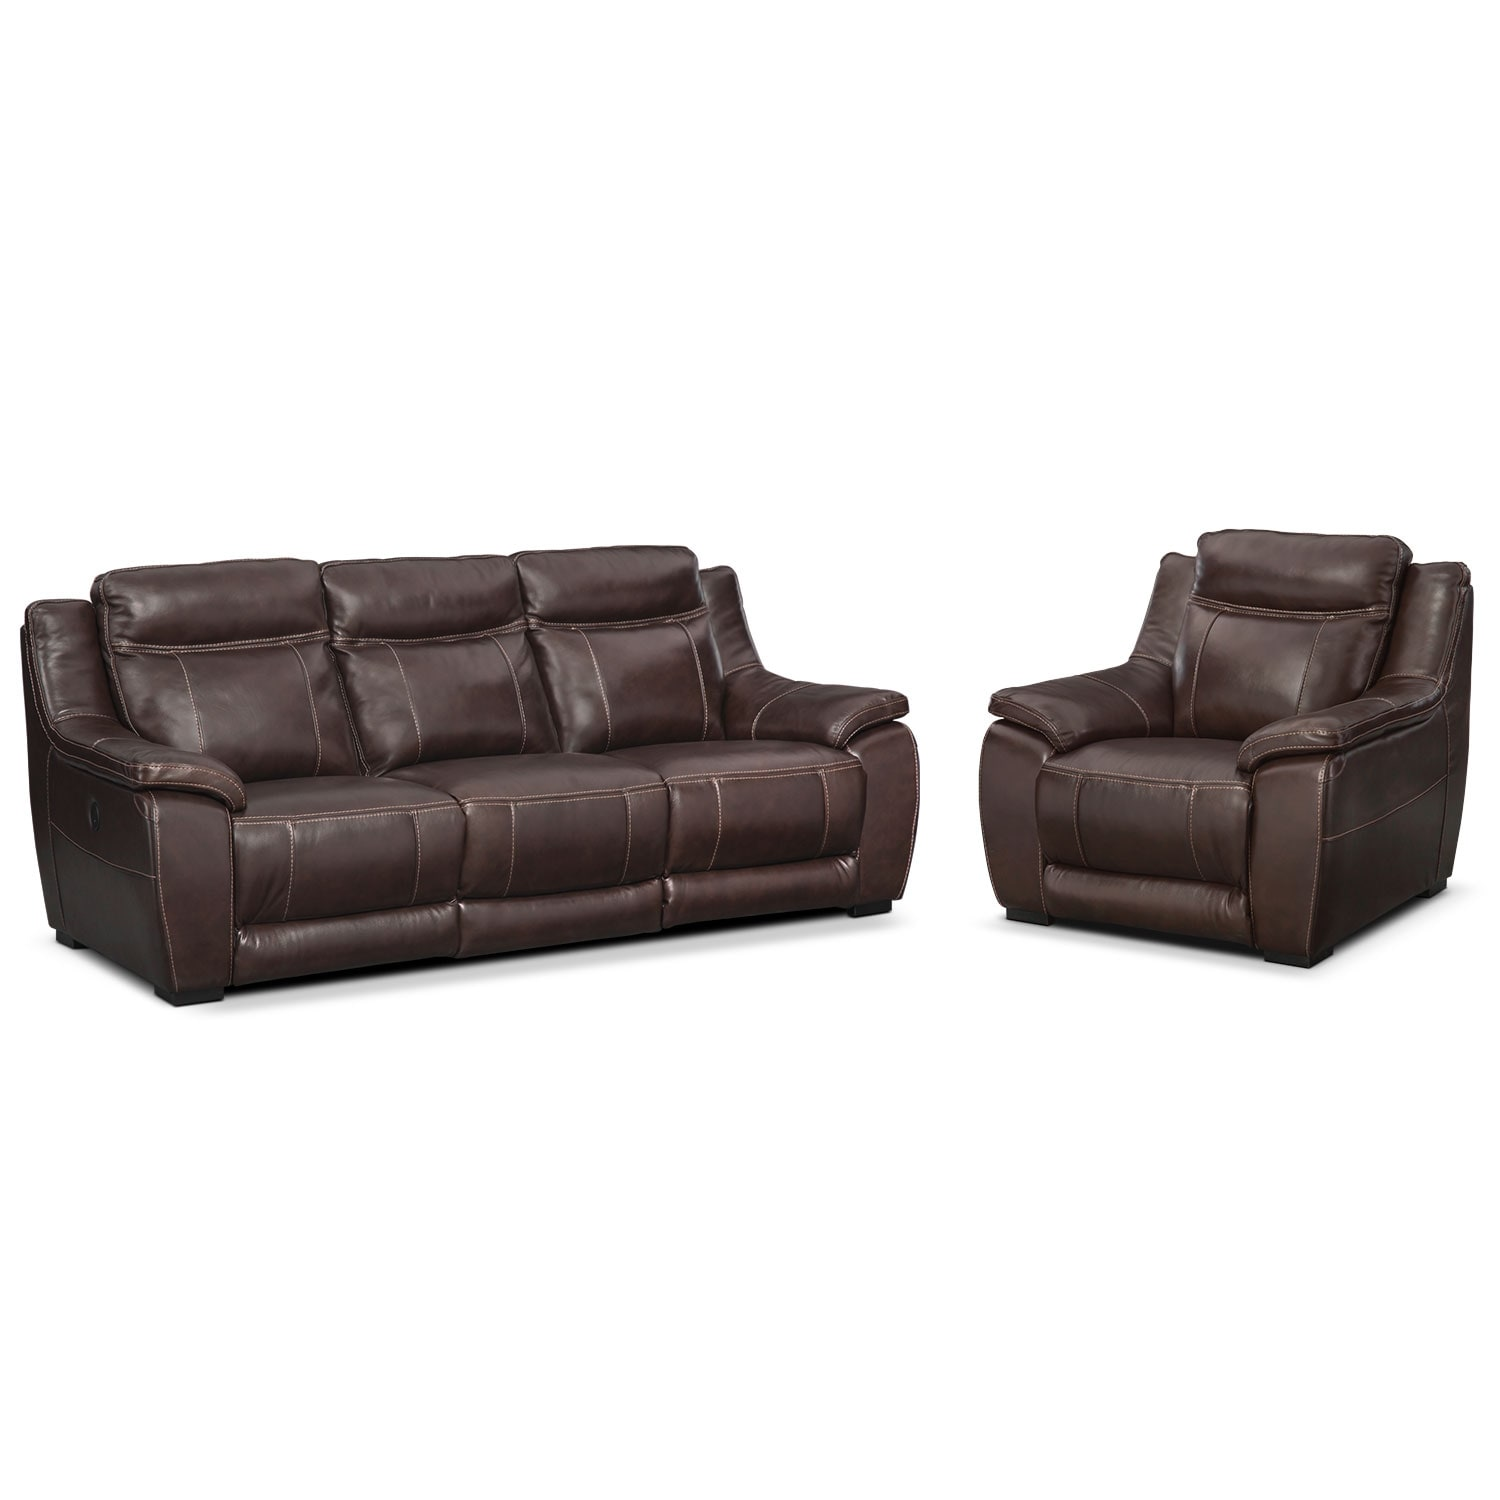 Living Room Furniture - Lido Brown 2 Pc. Power Reclining Living Room w/ Power Recliner